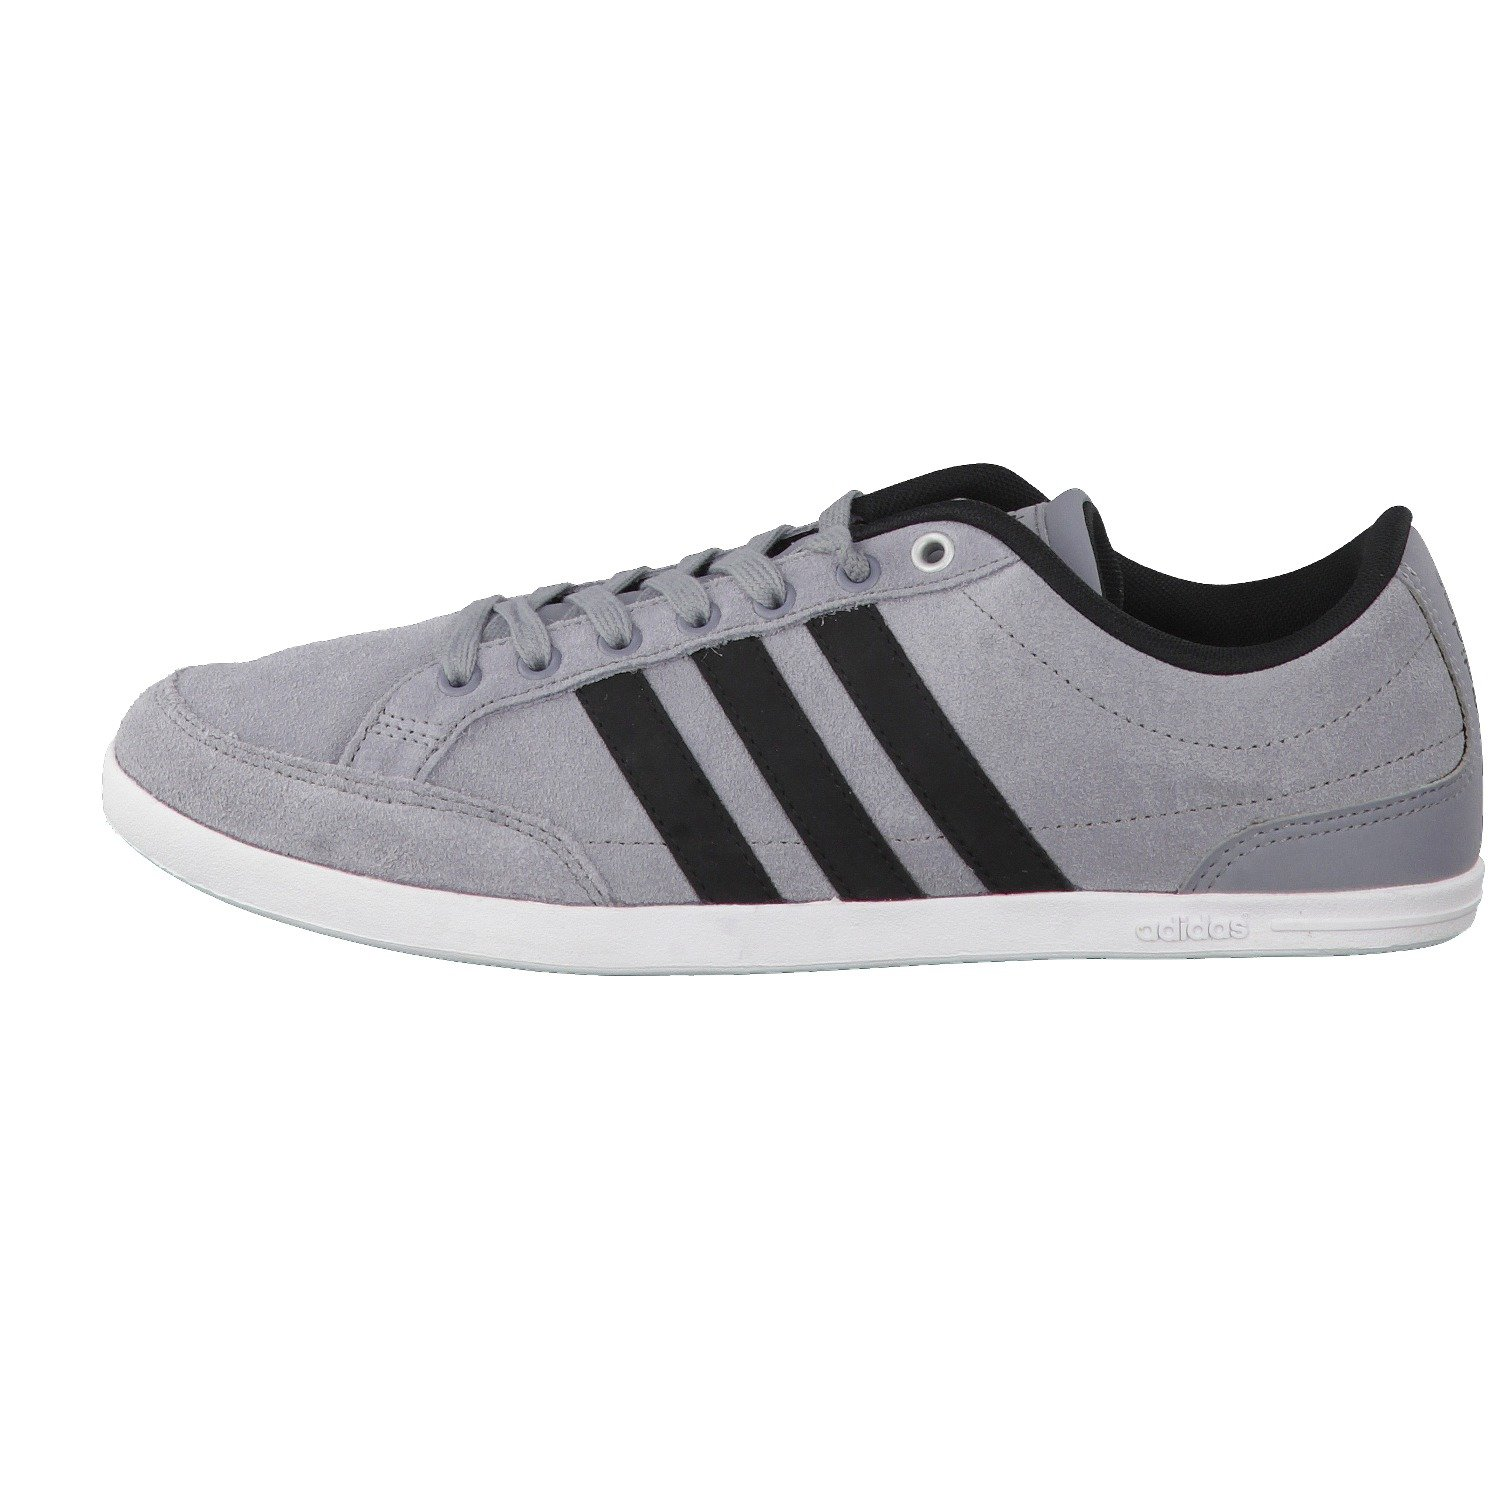 adidas caflaire grey cheap online